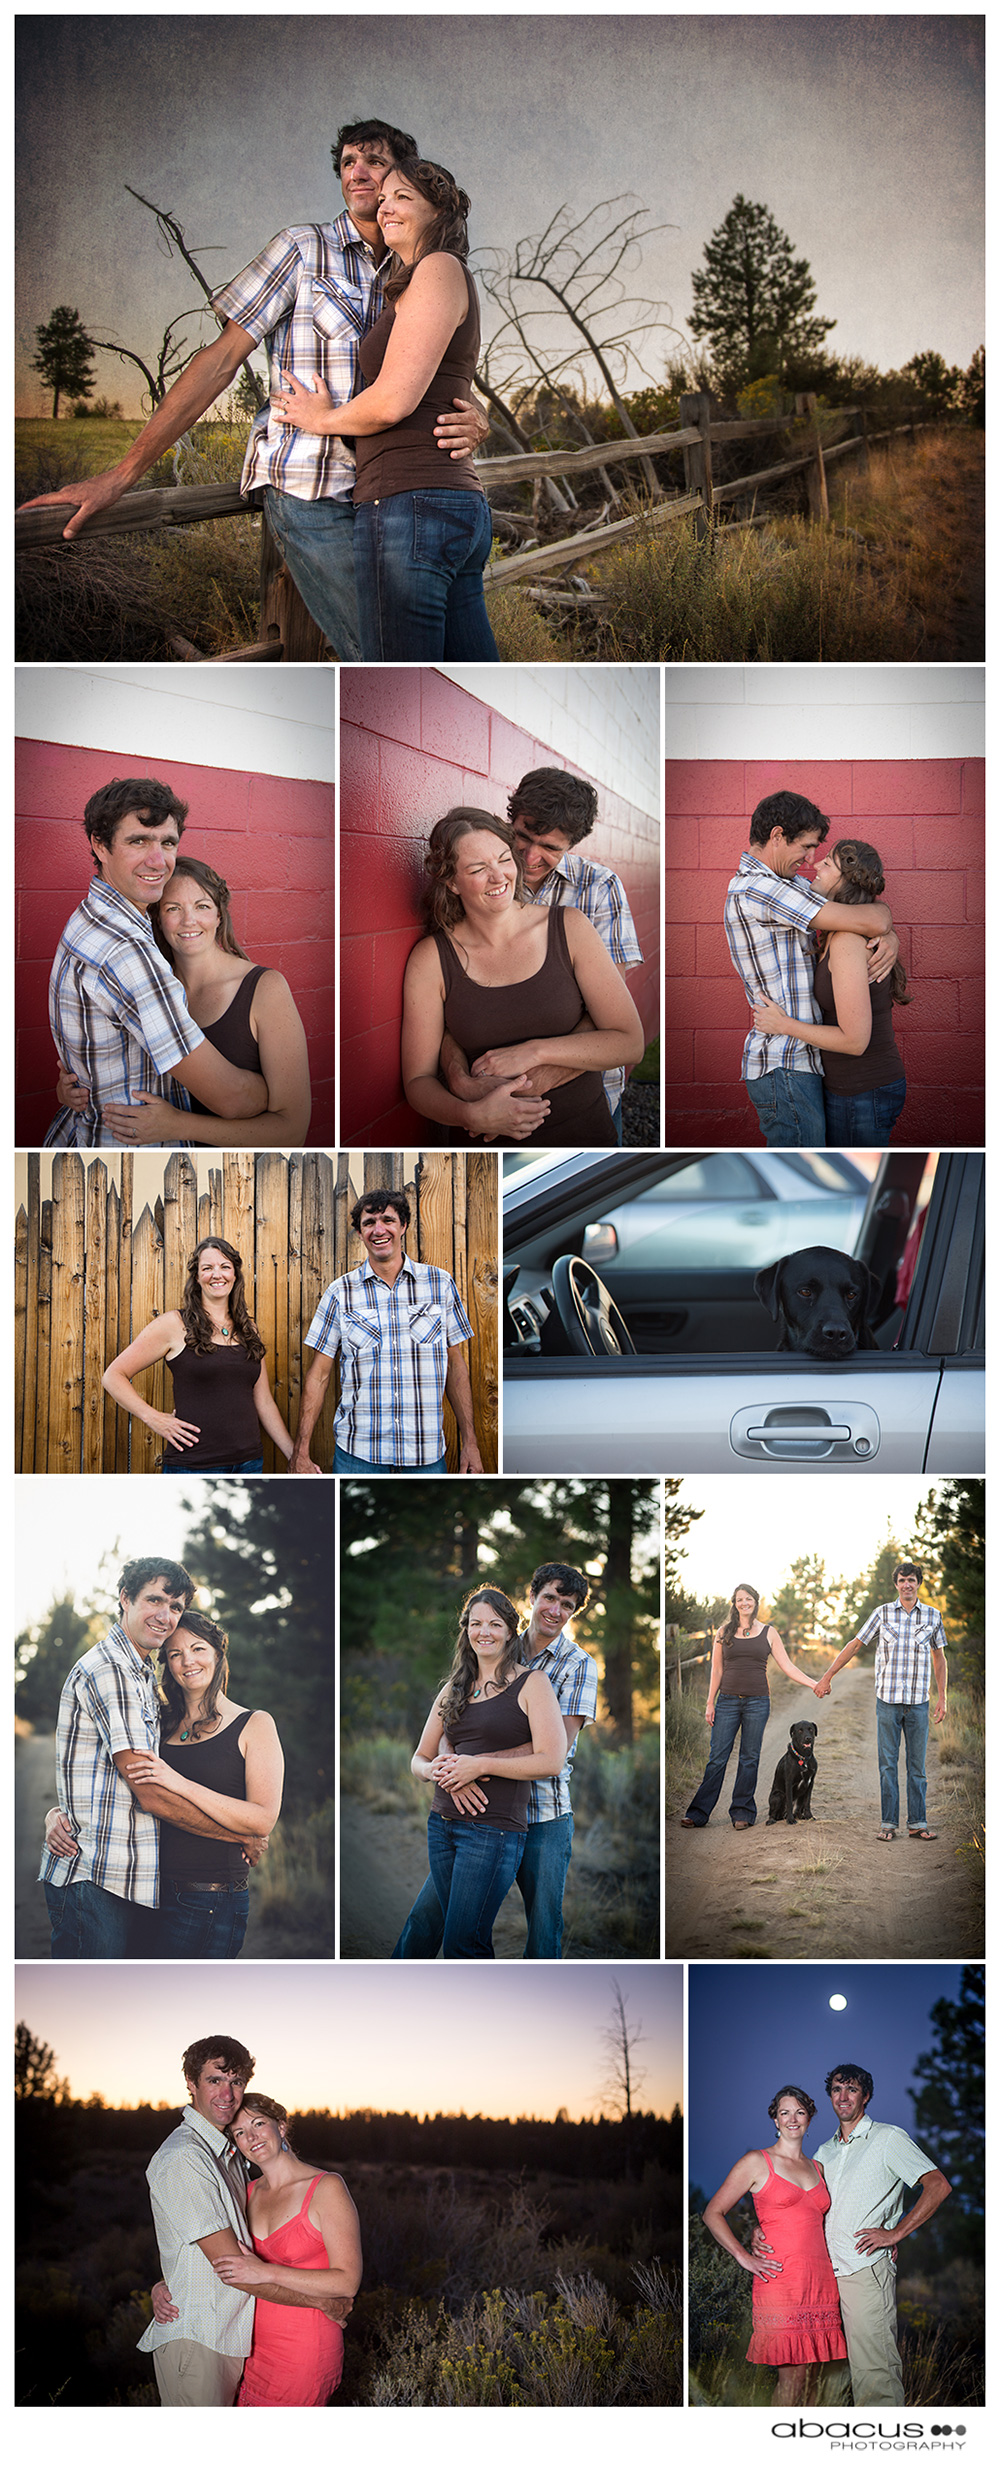 A fun outdoor summer engagement photo session here in Bend, Oregon!